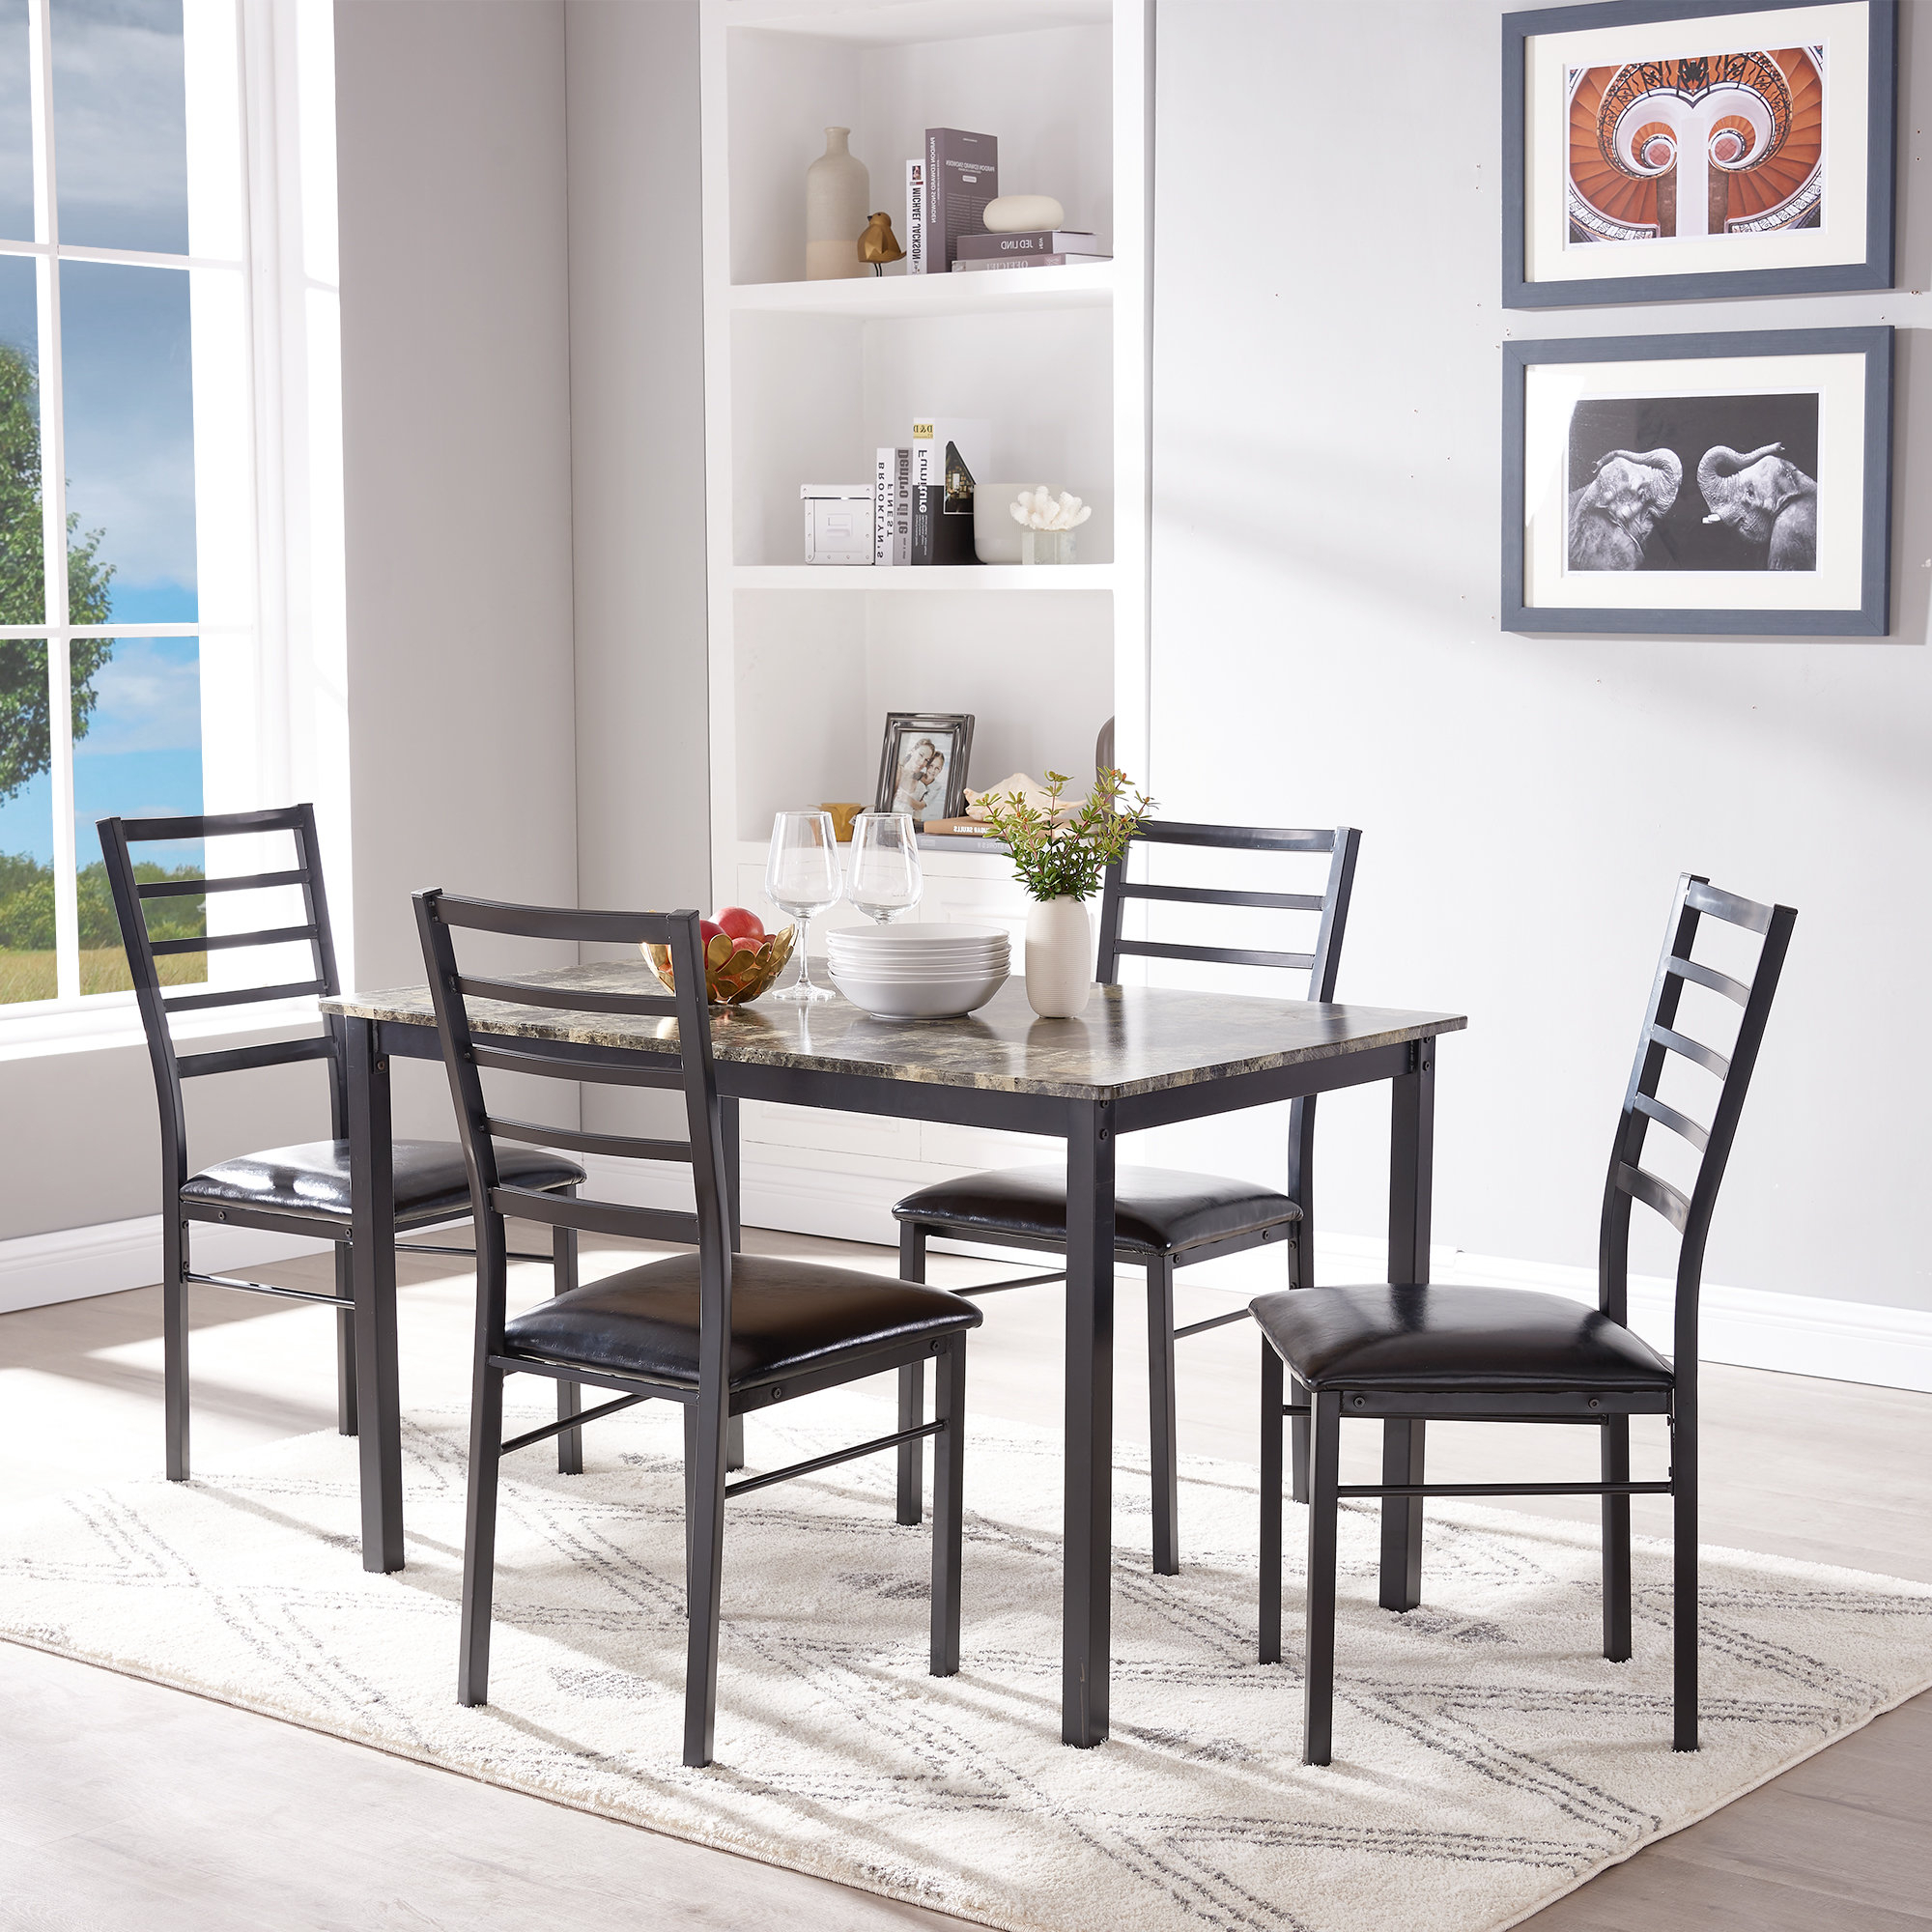 Mukai 5 Piece Dining Set Intended For Famous Stouferberg 5 Piece Dining Sets (View 9 of 20)